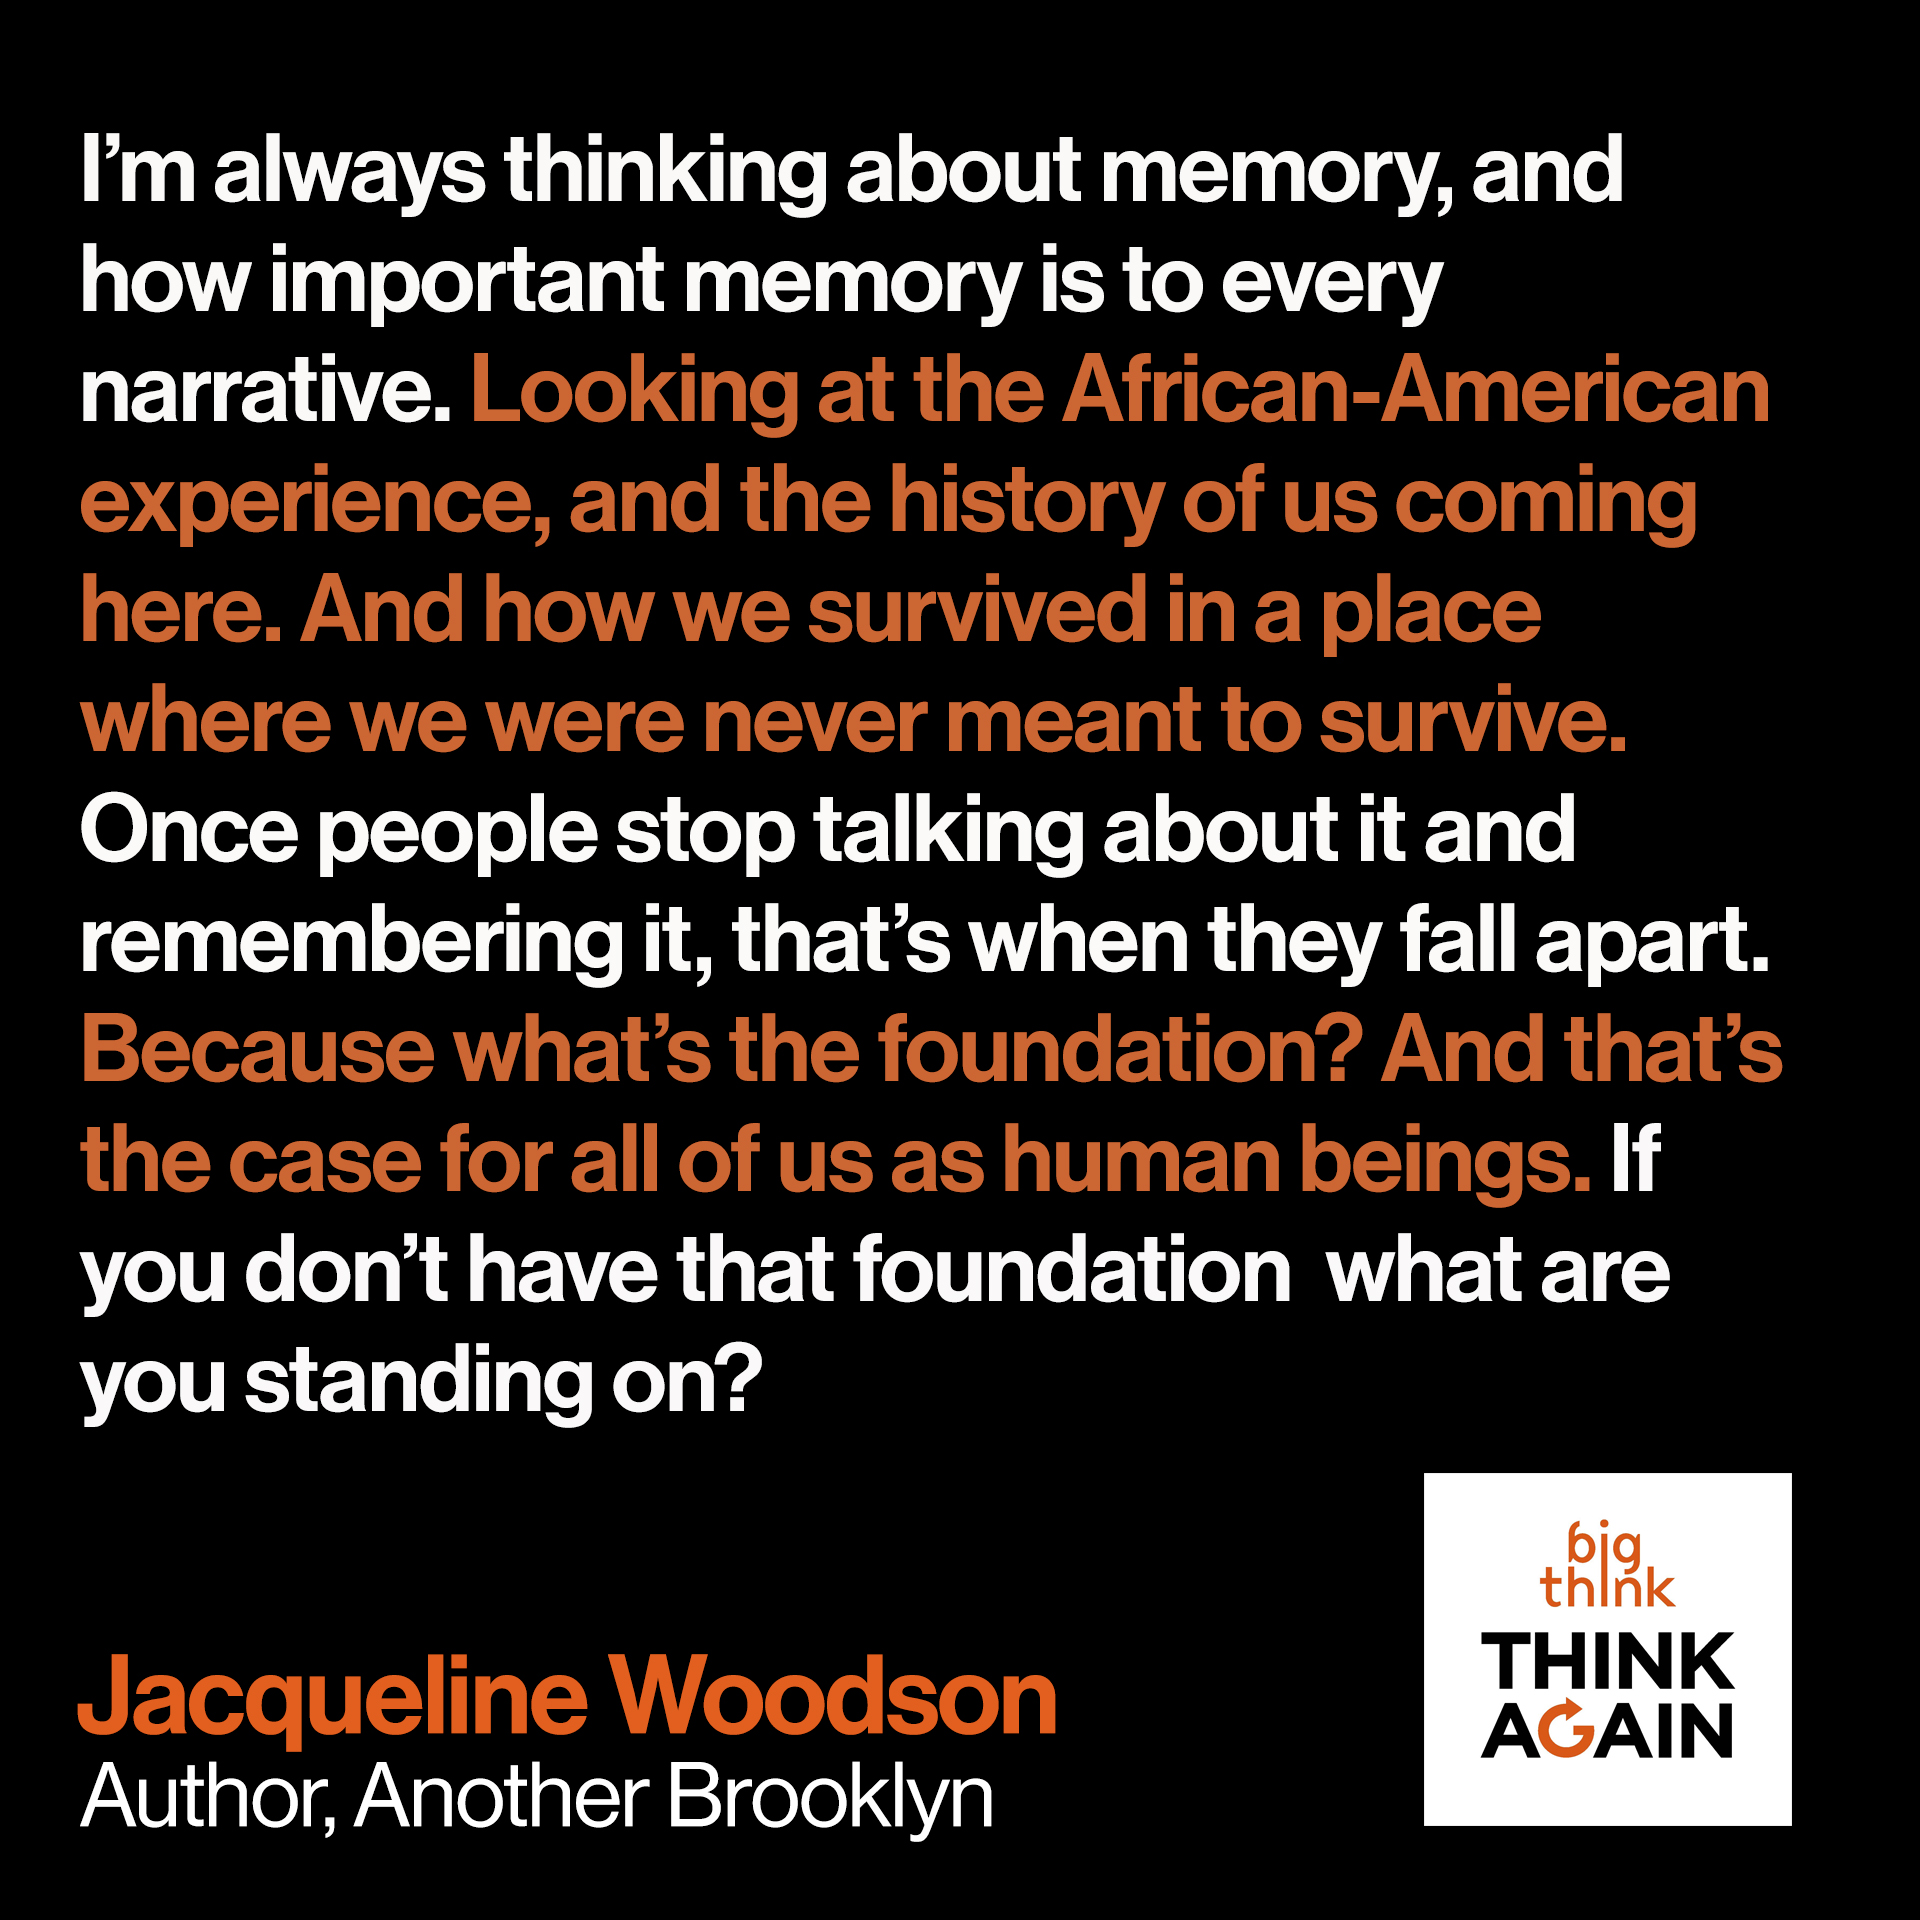 Jacqueline Woodson quote: I'm always thinking about memory, and how important memory is to every narrative.…looking at the African-American experience, and the history of us coming here. And how we survived in a place where we were never meant to survive. And the fact that that memory and that history was passed down, and passed down, and passed down. And it's not until people stop talking about it—once people stop talking about it and remembering it, that's when they fall apart. Because what's the foundation? And that's the case for all of us as human beings. If you don't have that foundation [of memory] what are you standing on?""